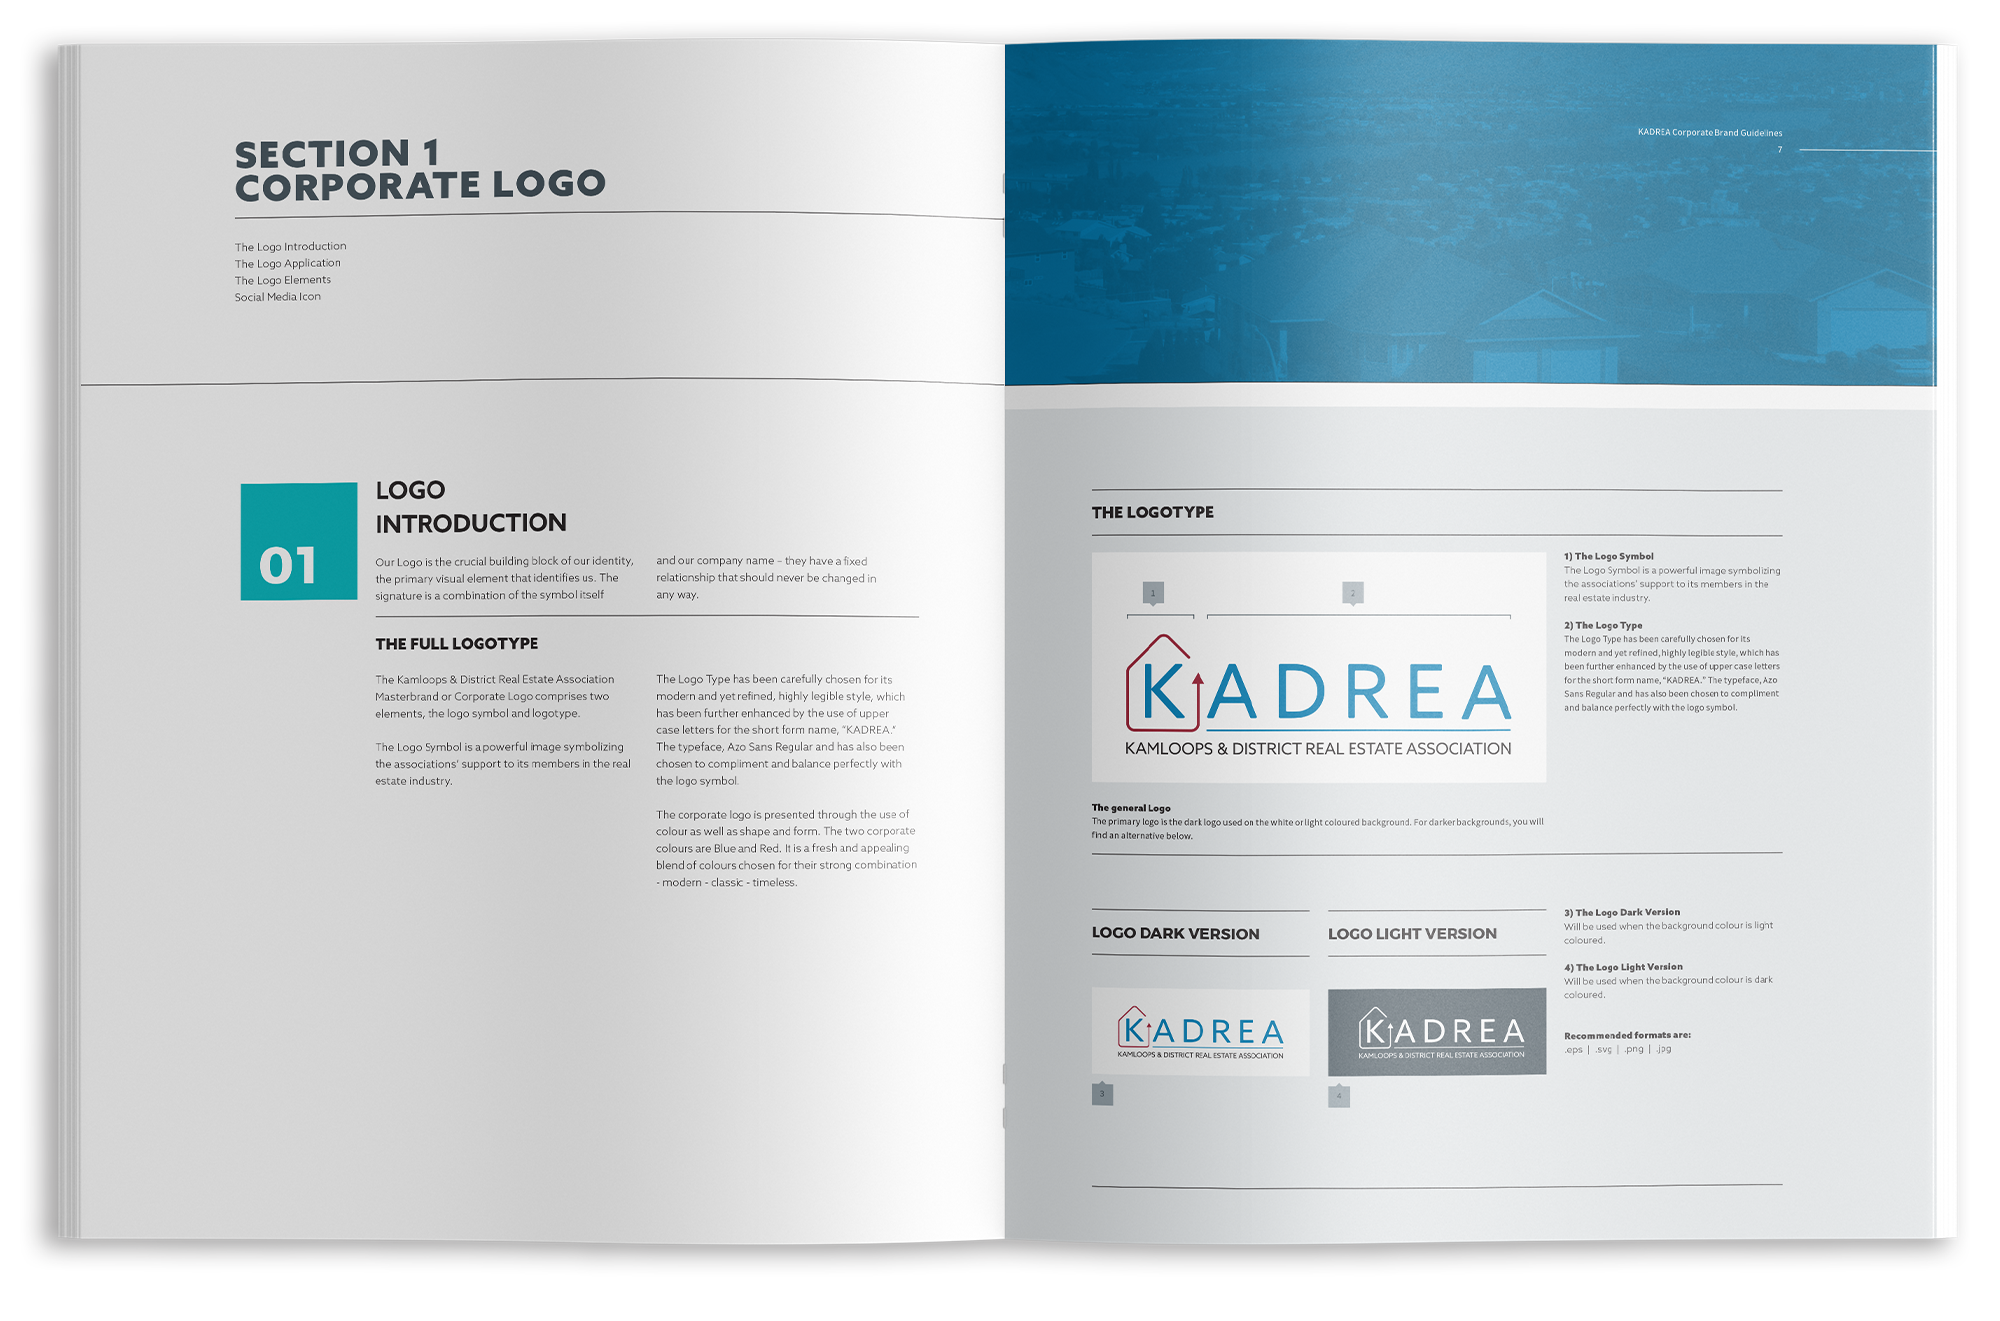 Sample of brand guide open to the logo usage page.